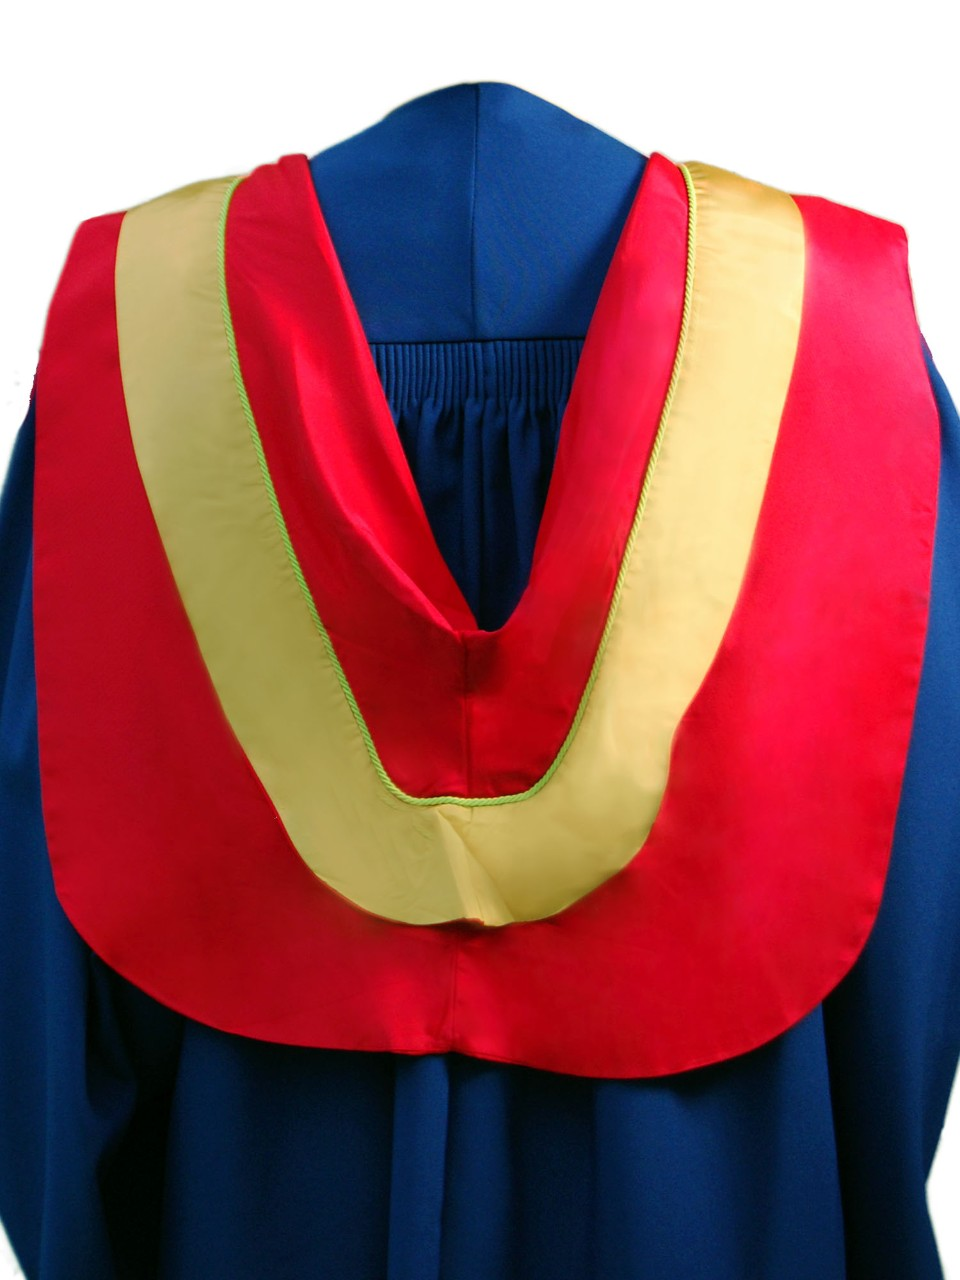 The Master of Pest Management hood is red with wide gold border and light green coding